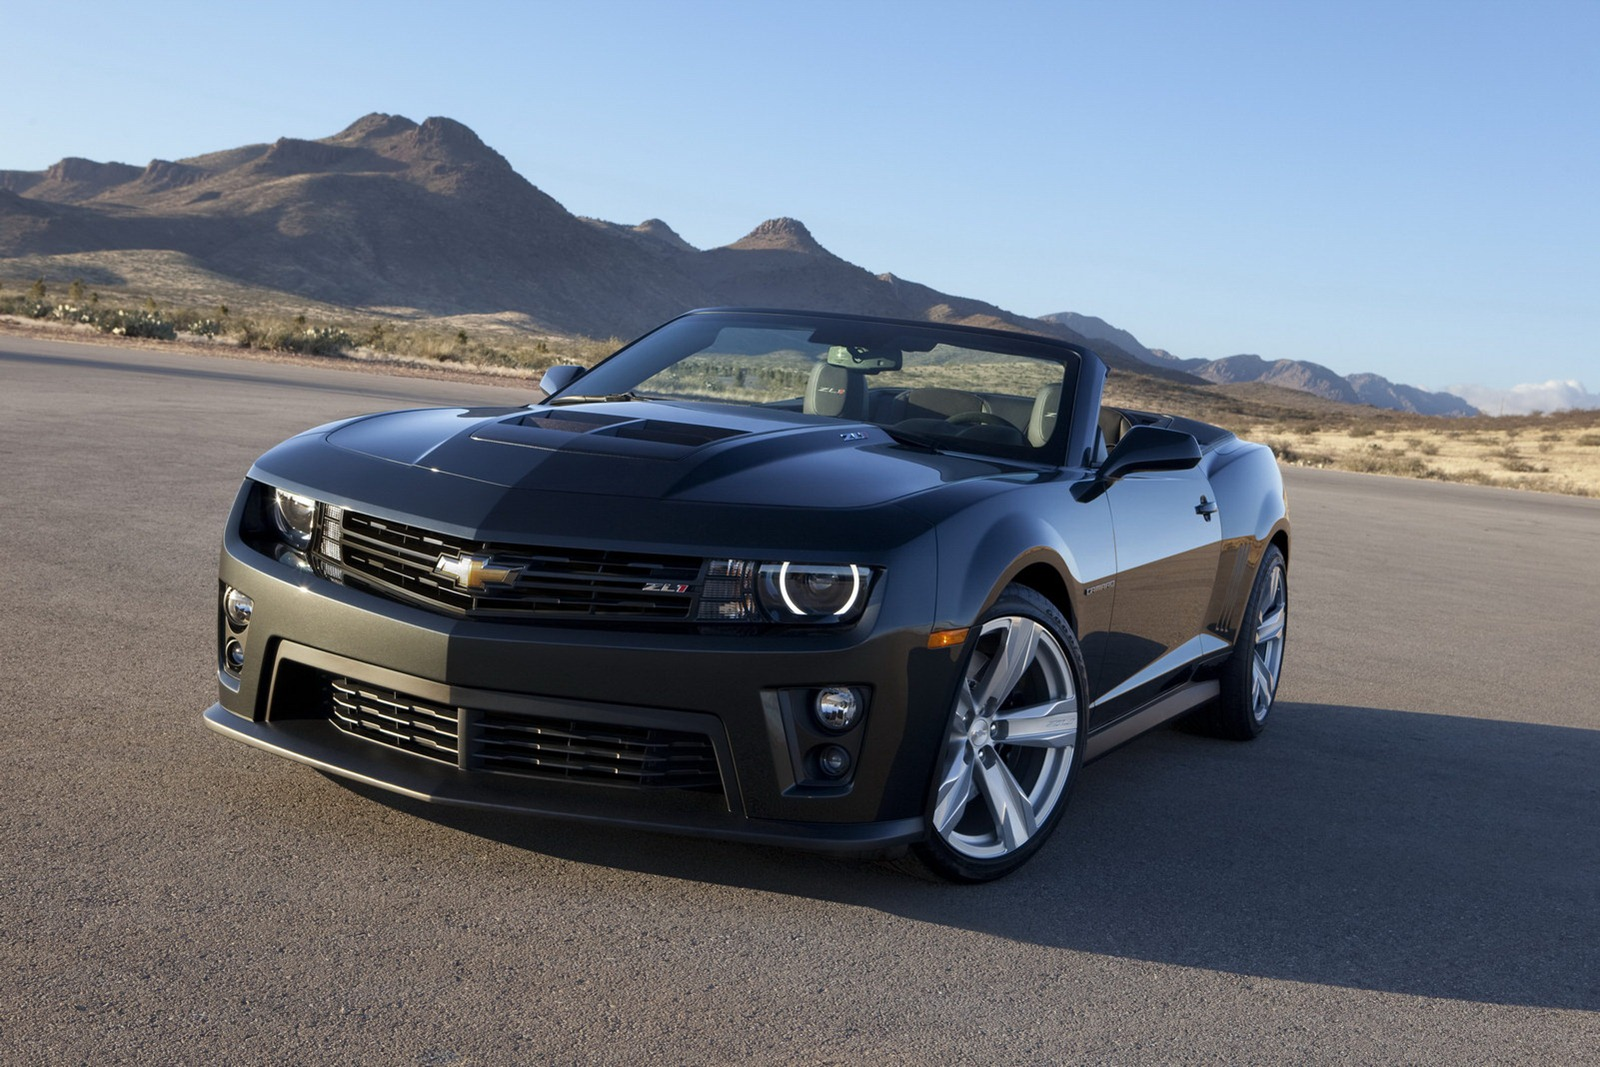 2012 Chevy Camaro Zl1 New Photos Released Autoevolution